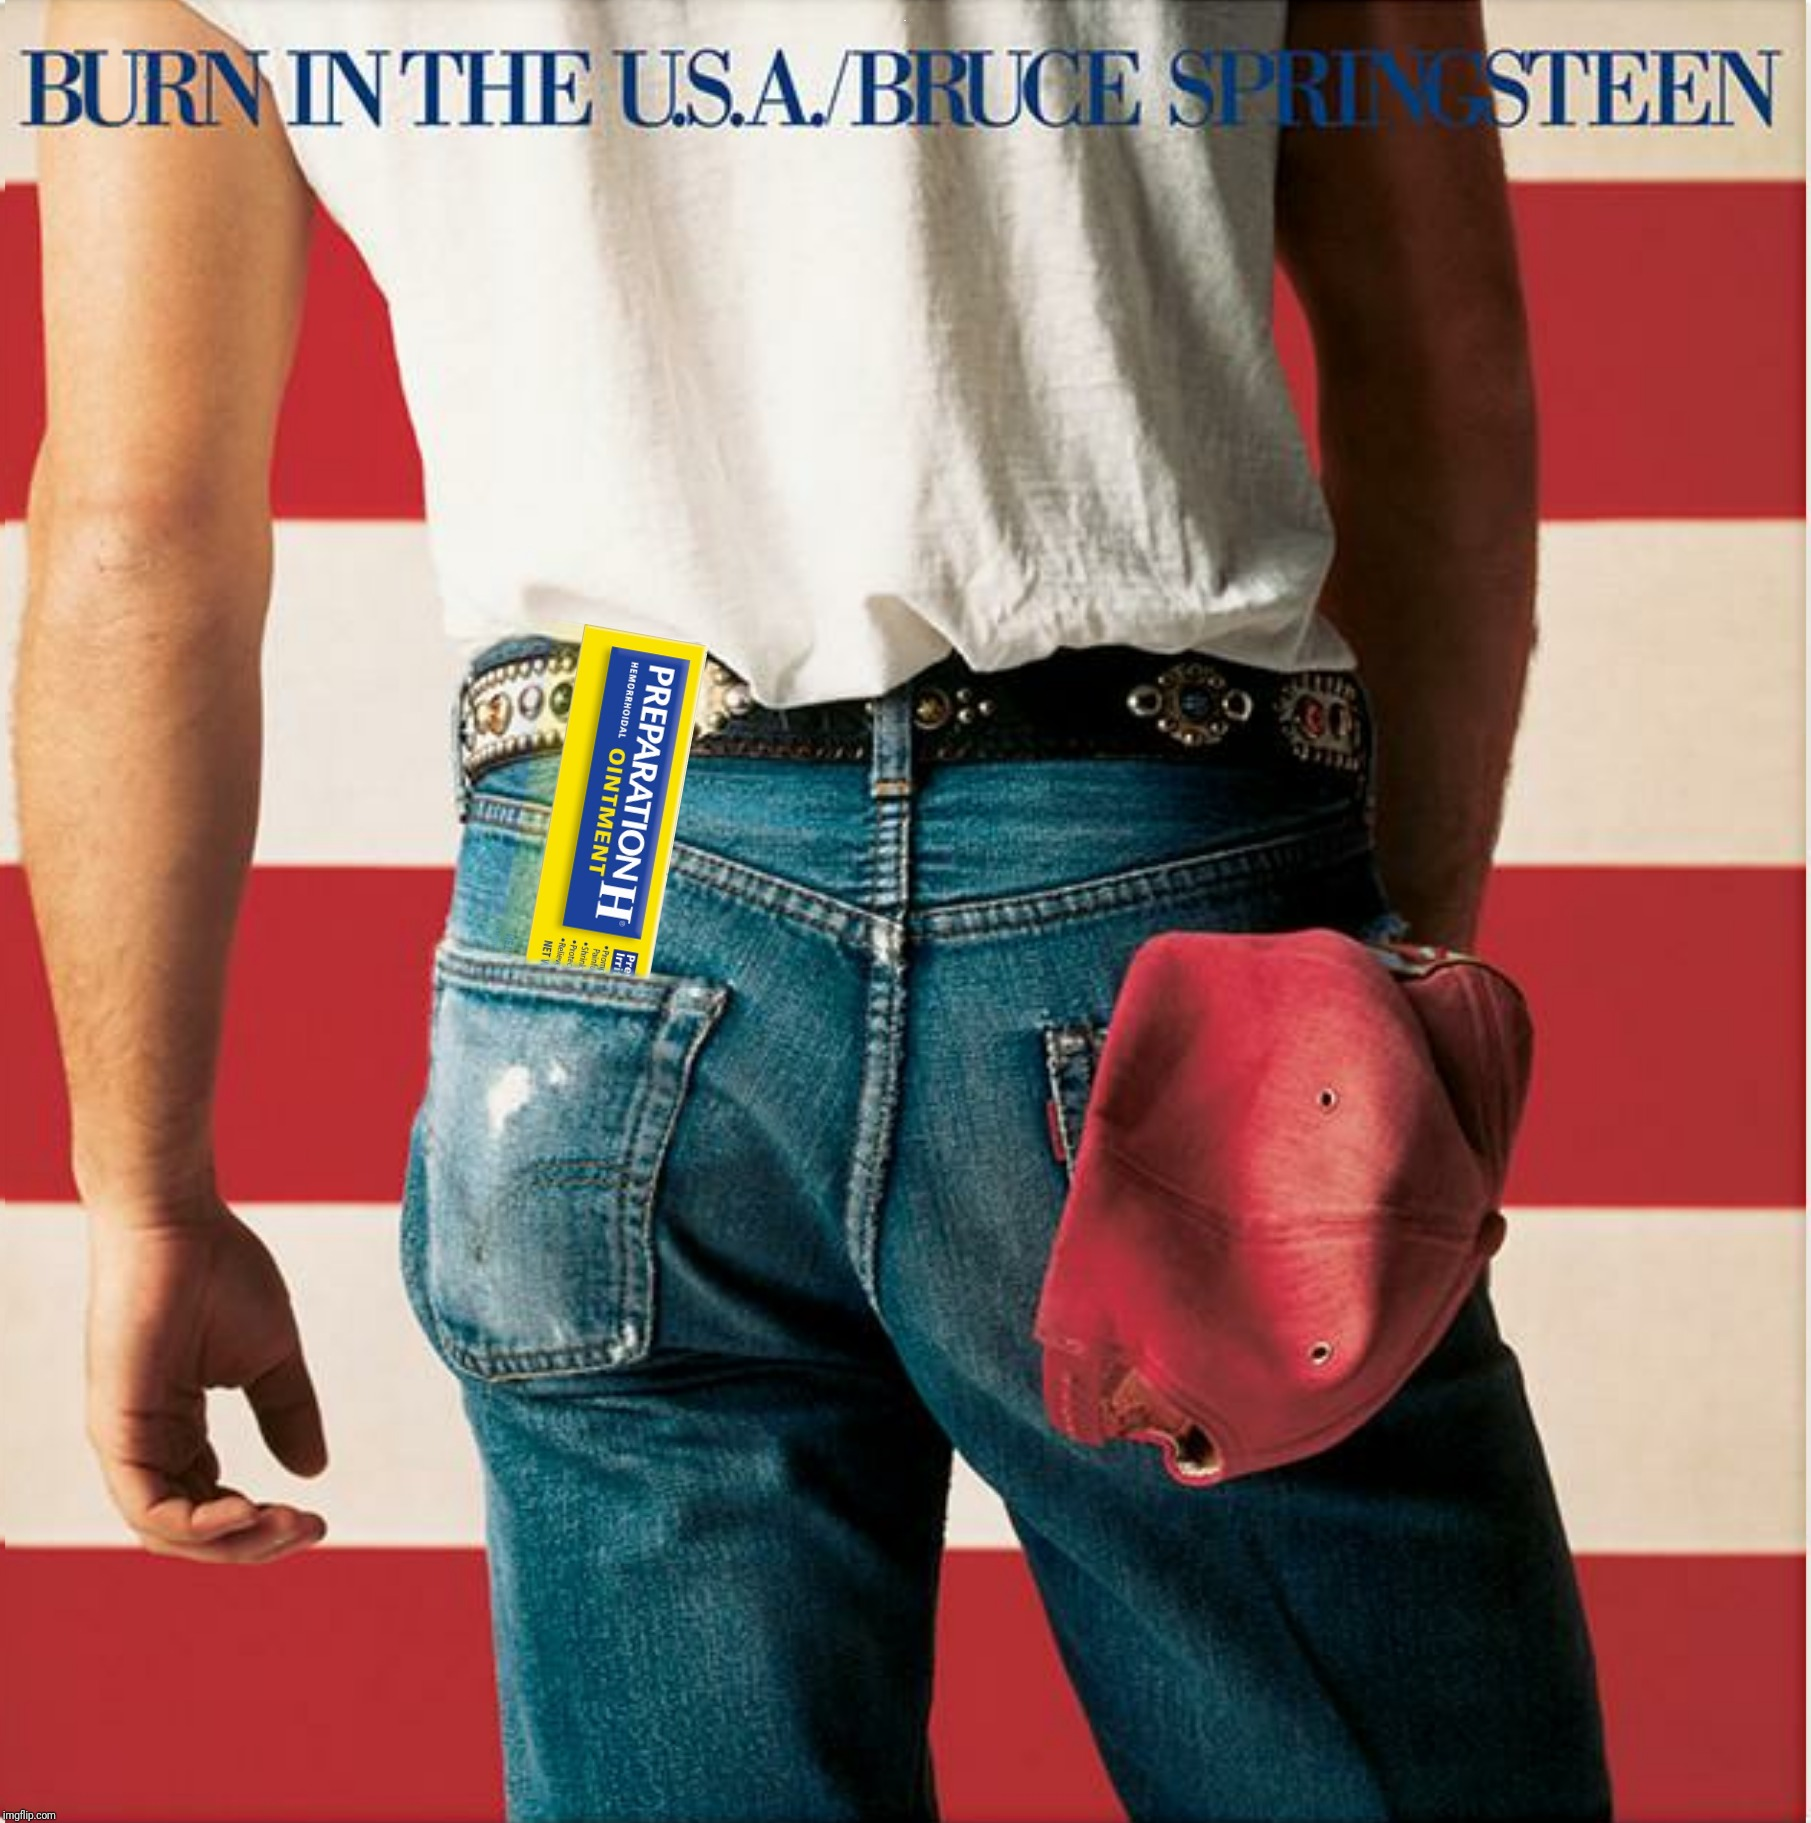 Bad Photoshop Sunday presents:  Burn In The U.S.A. |  B | image tagged in bad photoshop sunday,born in the usa,burn in the usa,preparation h,bruce springsteen | made w/ Imgflip meme maker